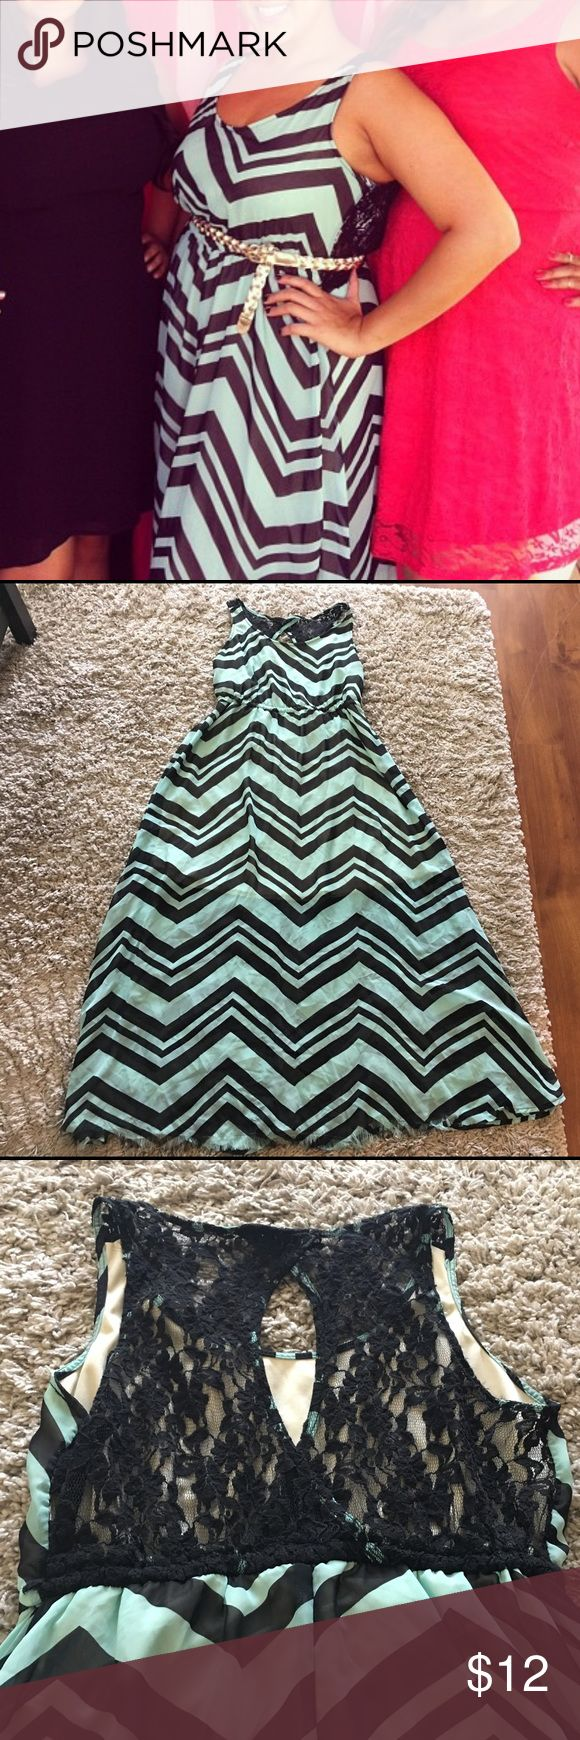 Chevron maxi dress XL Beautiful mint chevron maxi dress from Forever 21 XL with lace back. Front hem has come undone but just looks like fringe. Forever 21 Dresses Maxi